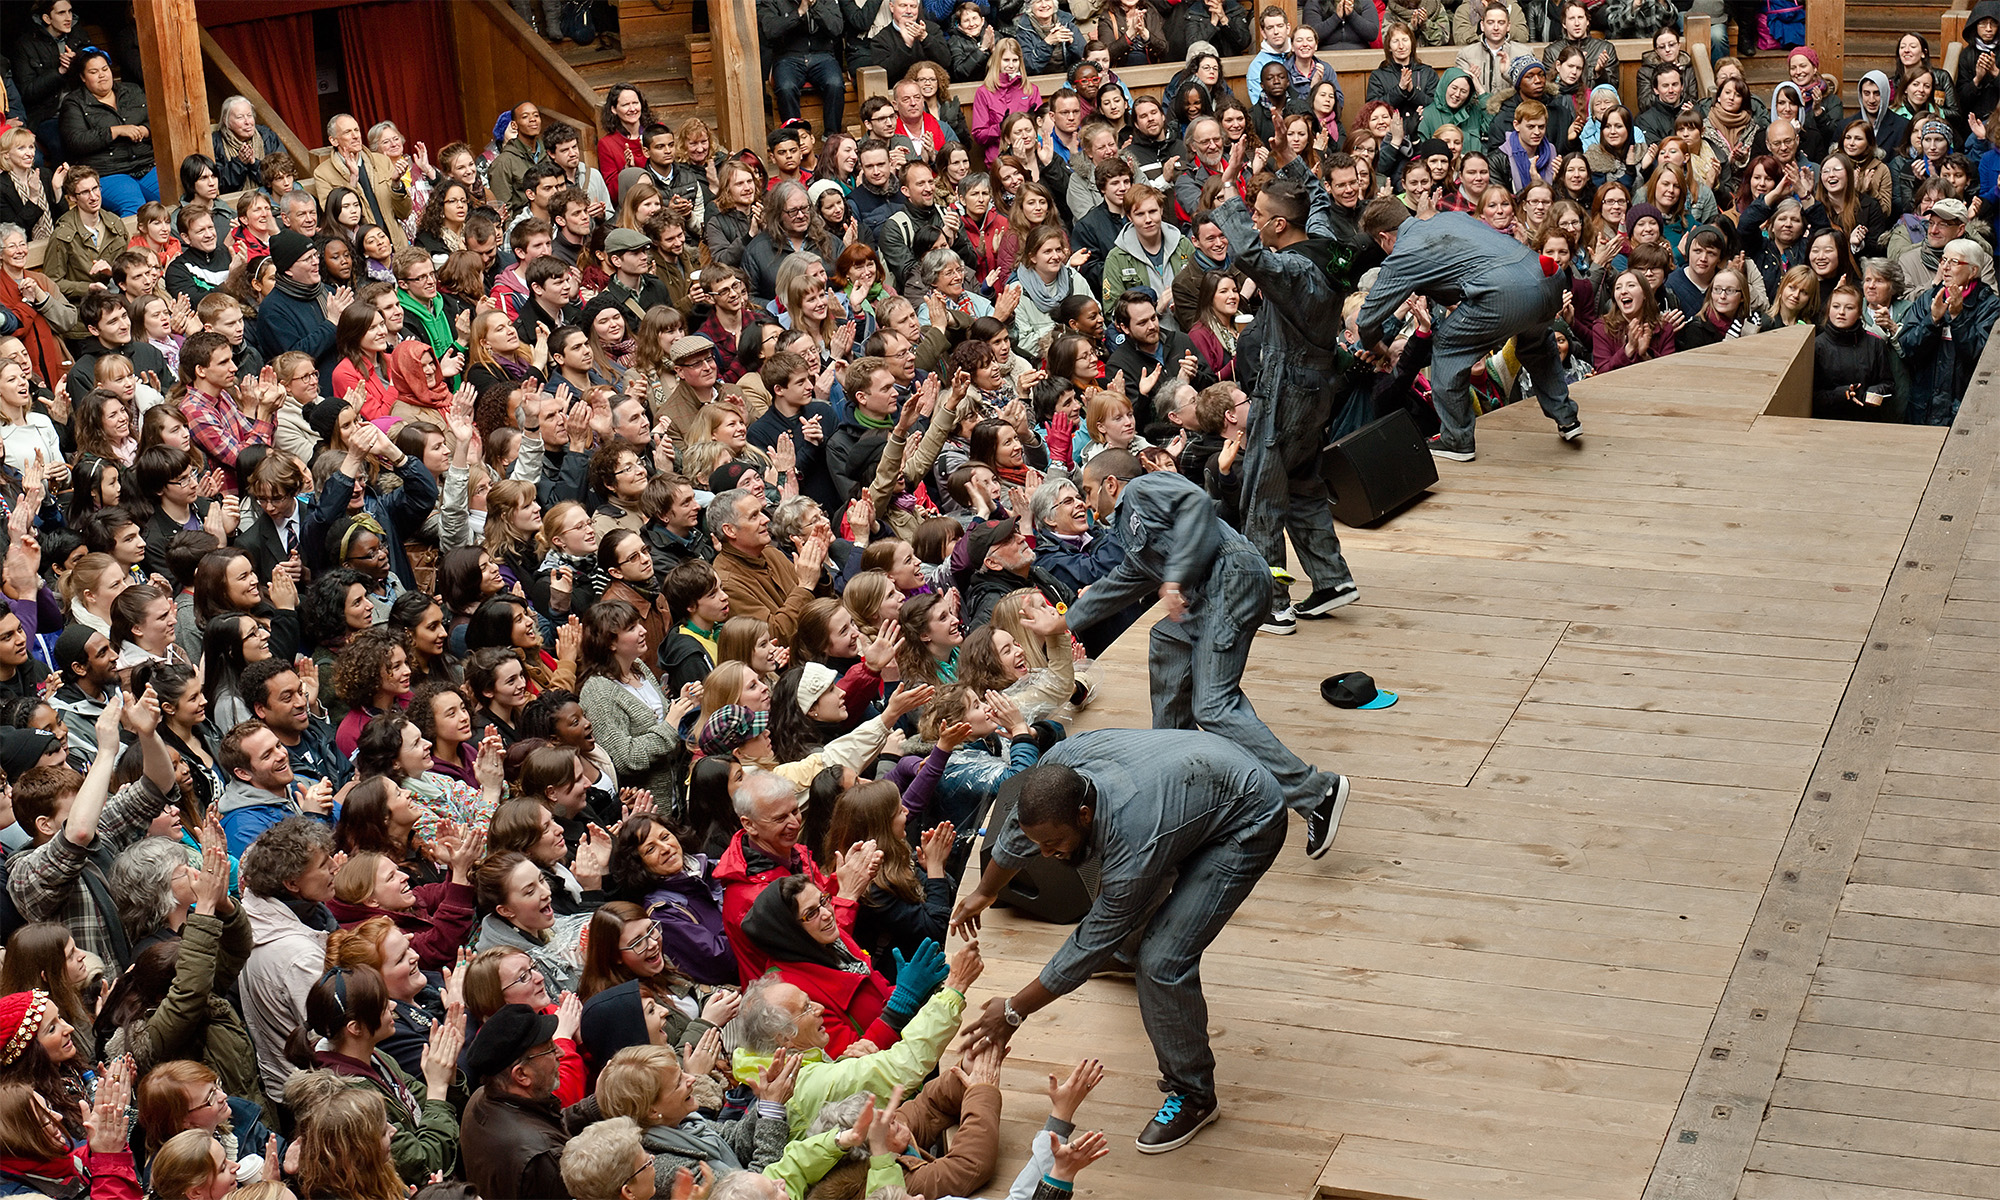 Four actors stand on the edge of a thrust stage, bending down to high five and hold the hands of audience members standing in the Yard in front.